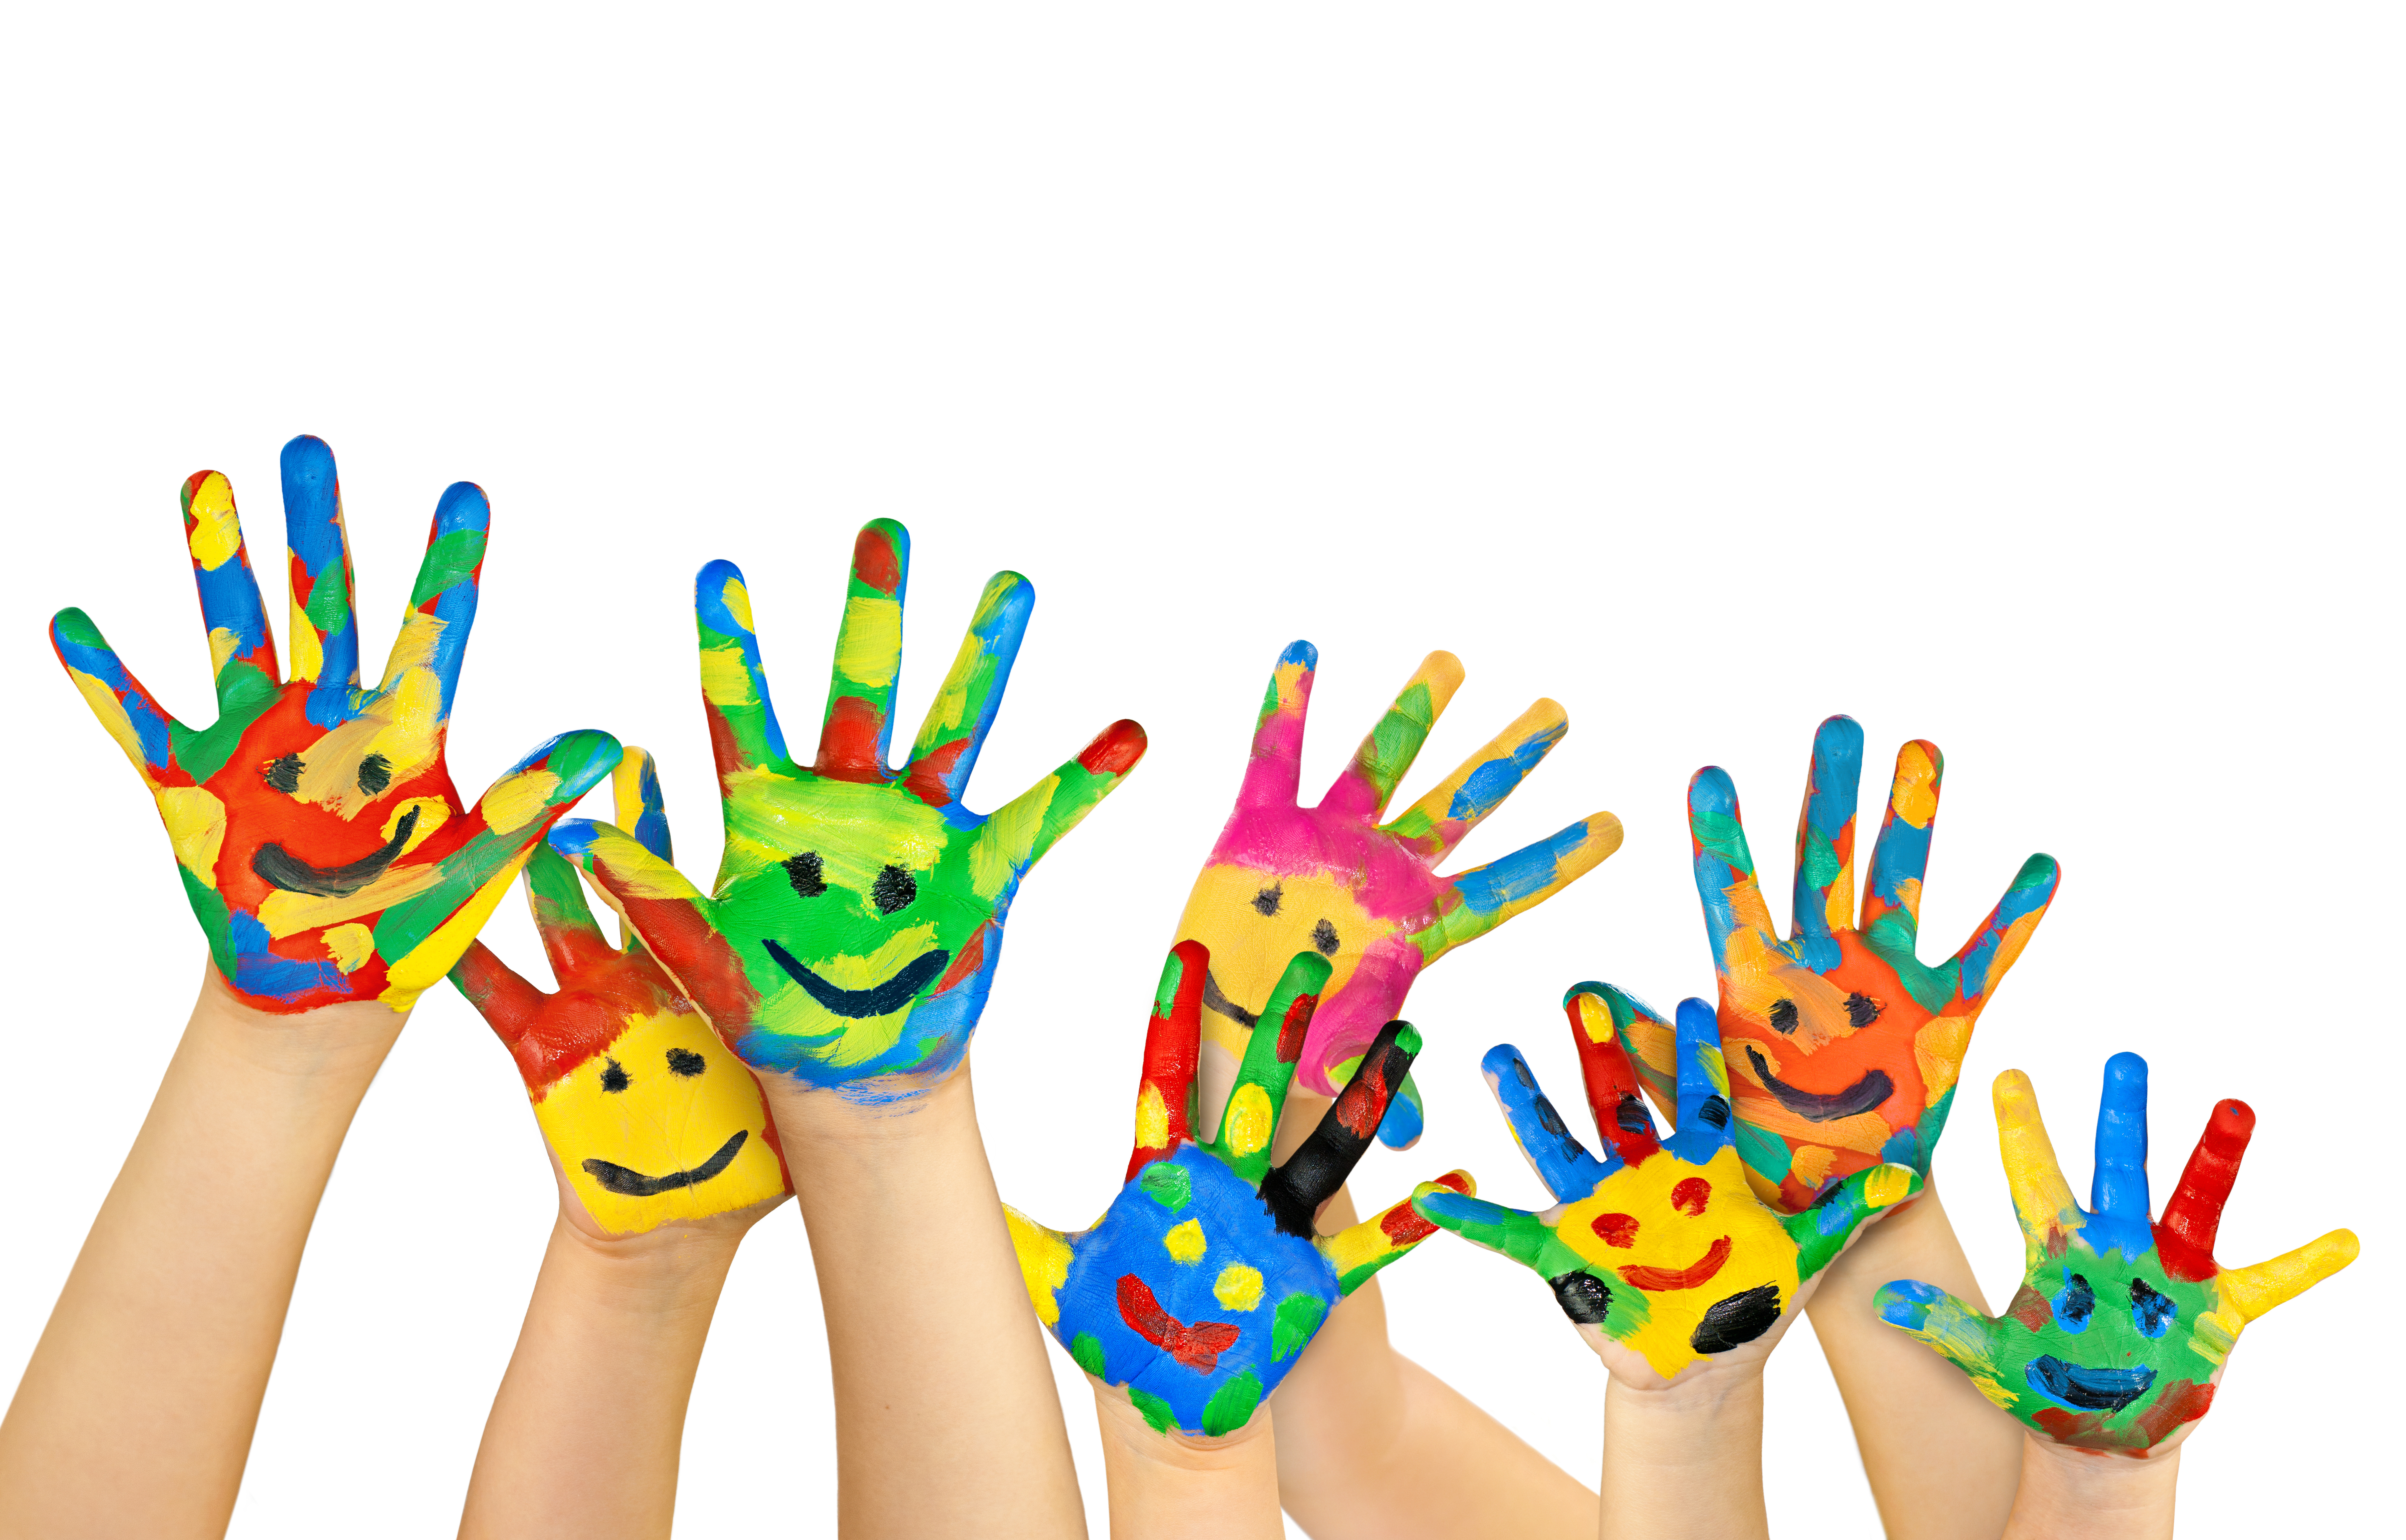 many painted colorful children's hands